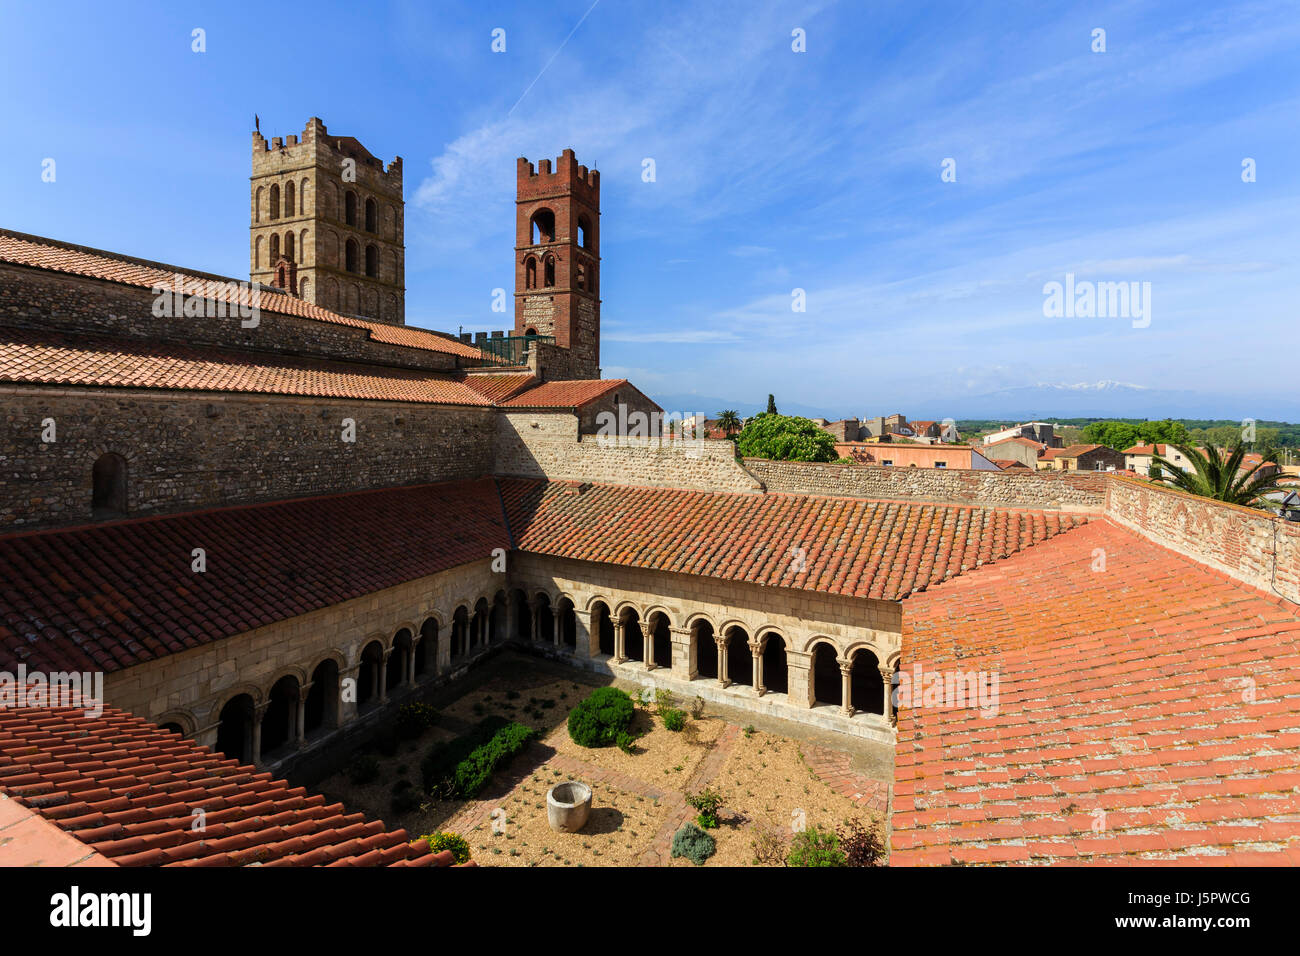 France, Pyrenees Orientales, Elne, Elne Cathedral, Romanesque cloister - Stock Image